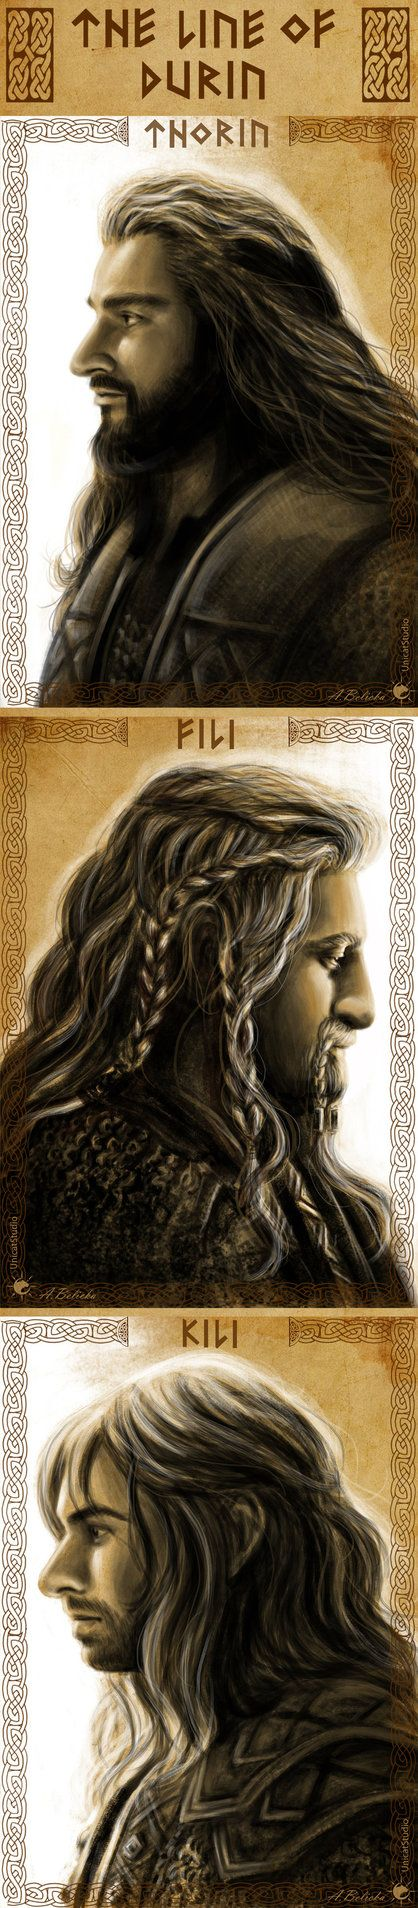 The Line of Durin by UnicatStudio on DeviantArt